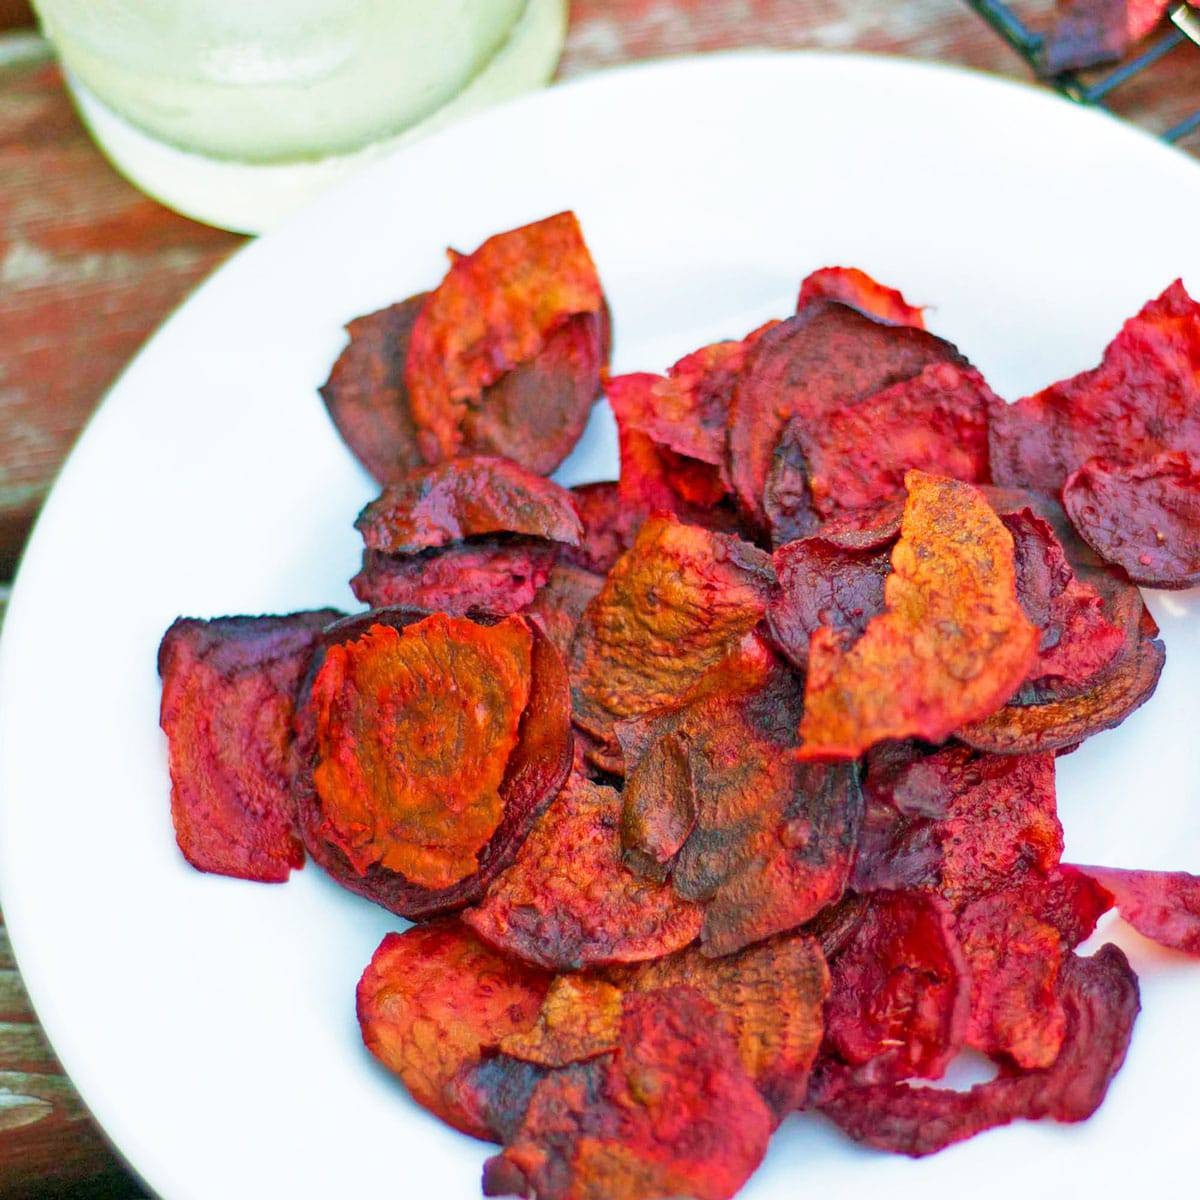 A plate of beet chips